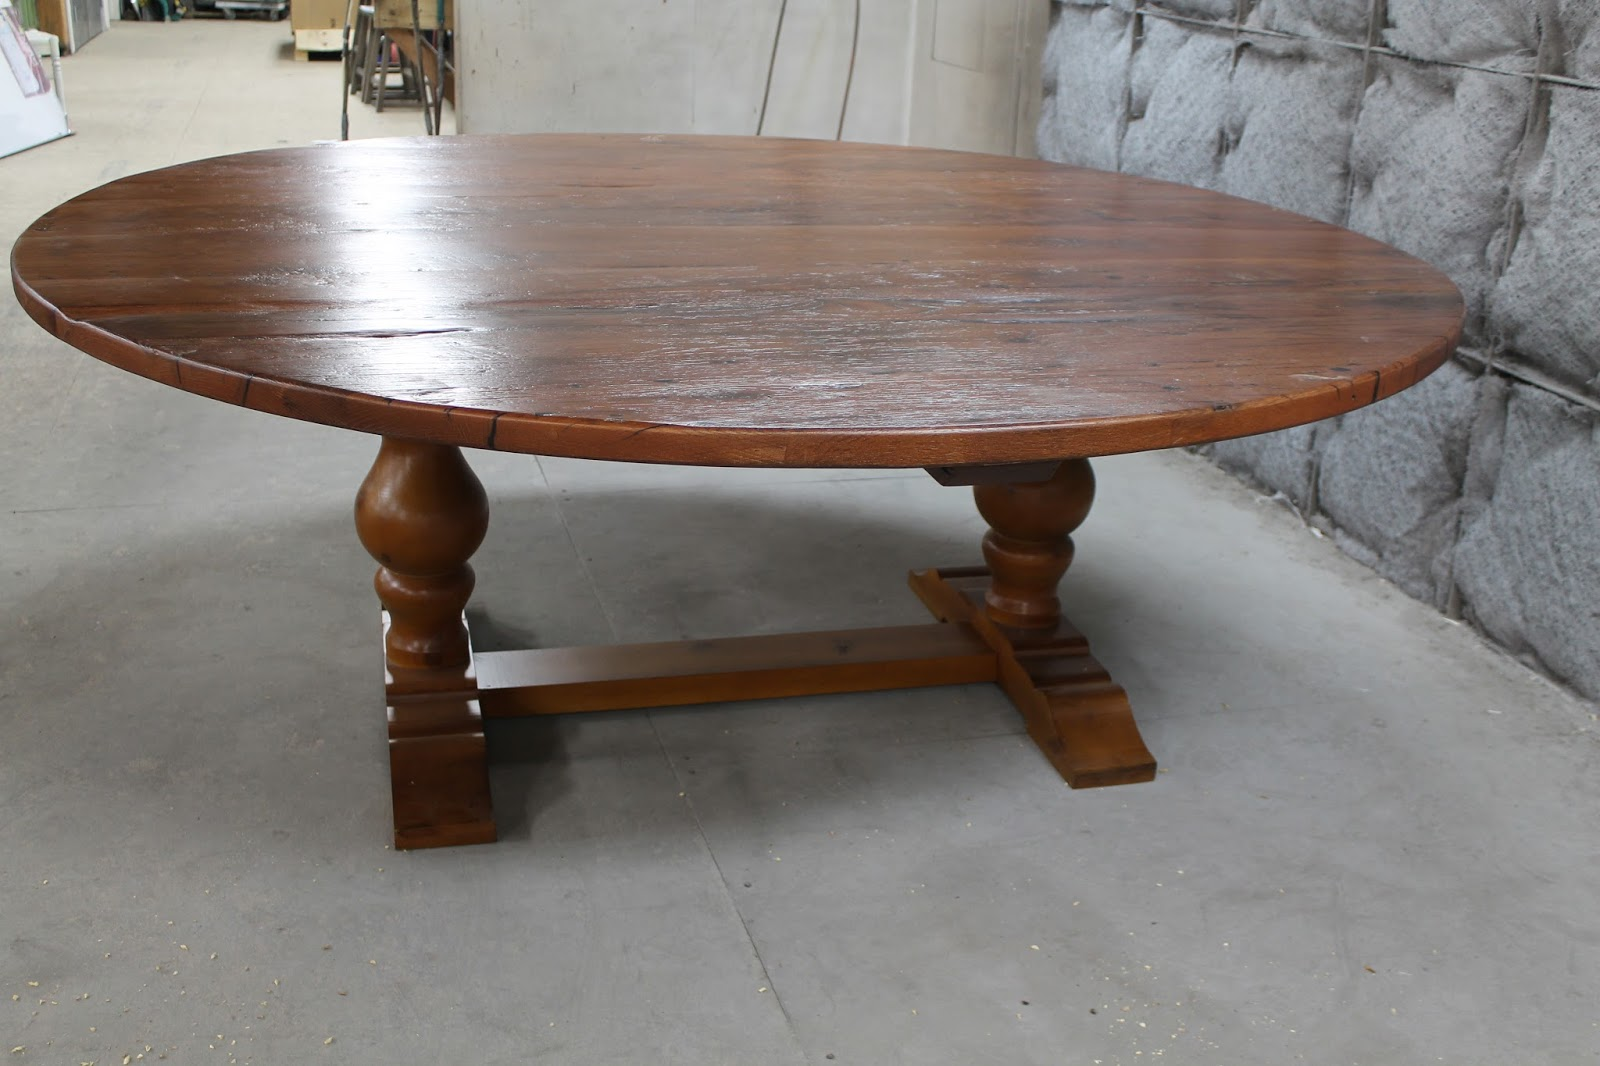 84 Inch Round Dining Table With Lazy Susan